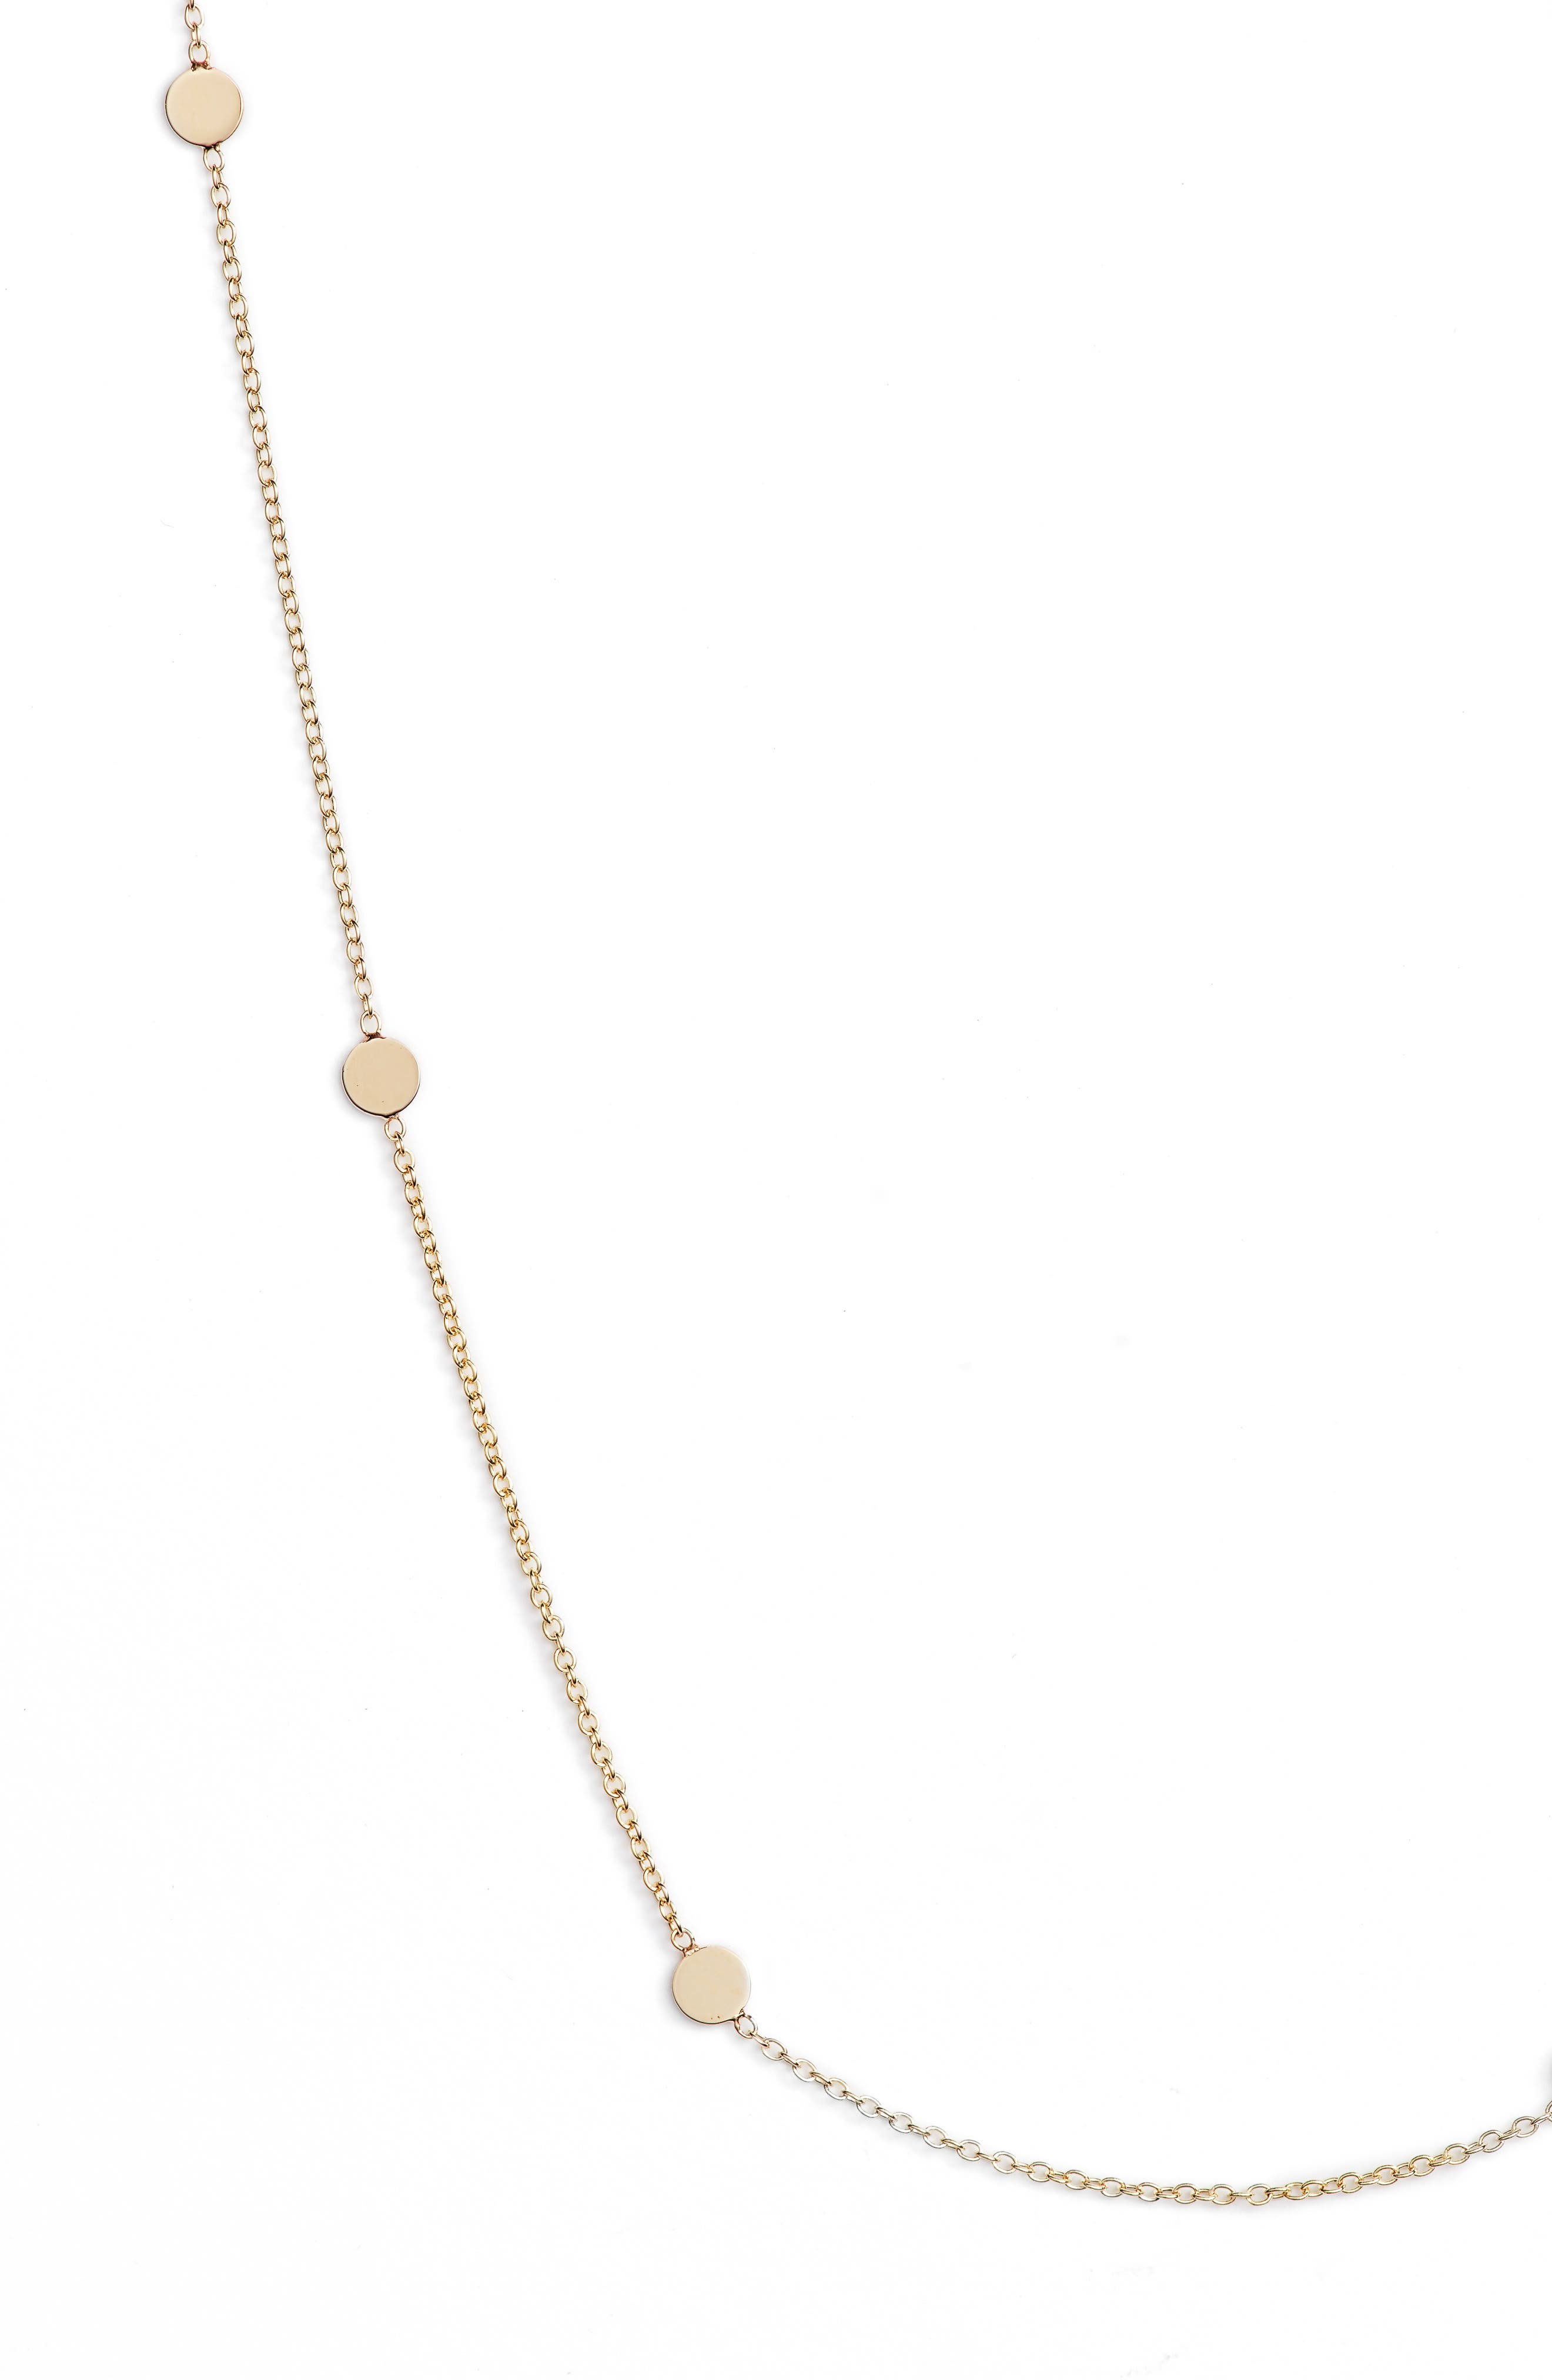 Itty Bitty Round Disc Station Necklace,                             Alternate thumbnail 2, color,                             YELLOW GOLD